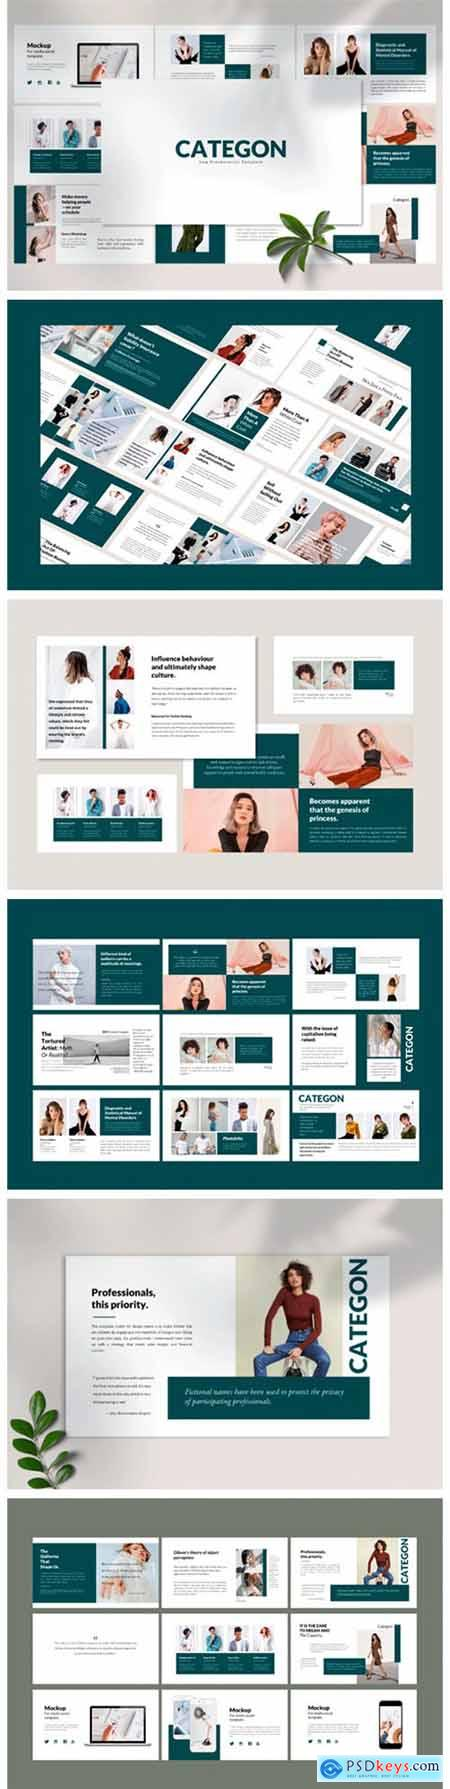 Categon - Google Slides Template 2276699